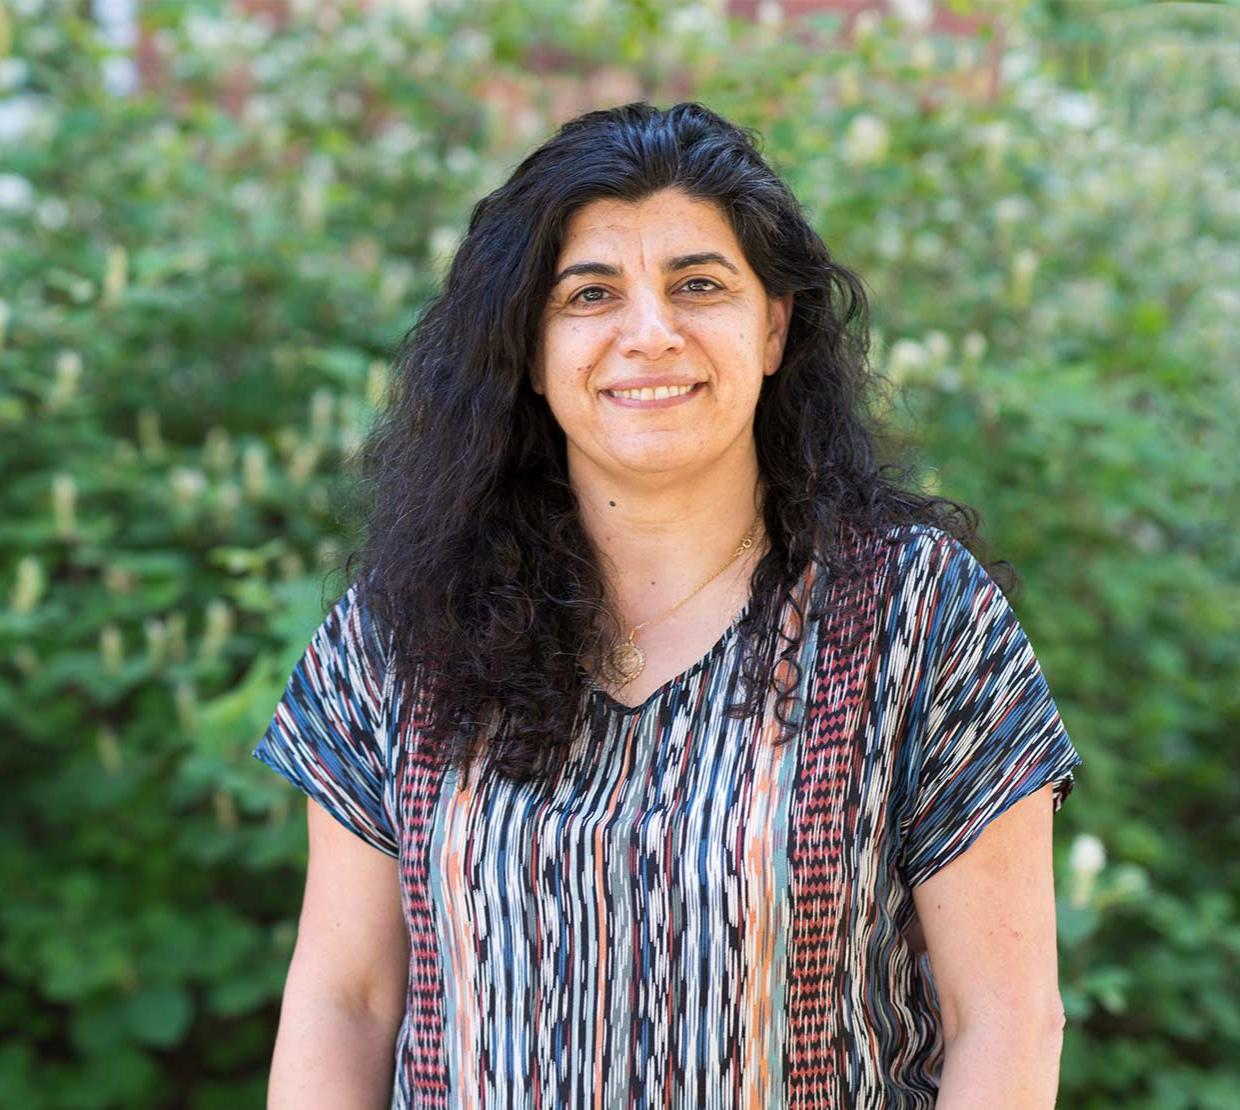 Elisar Barbar standing in front of a green background